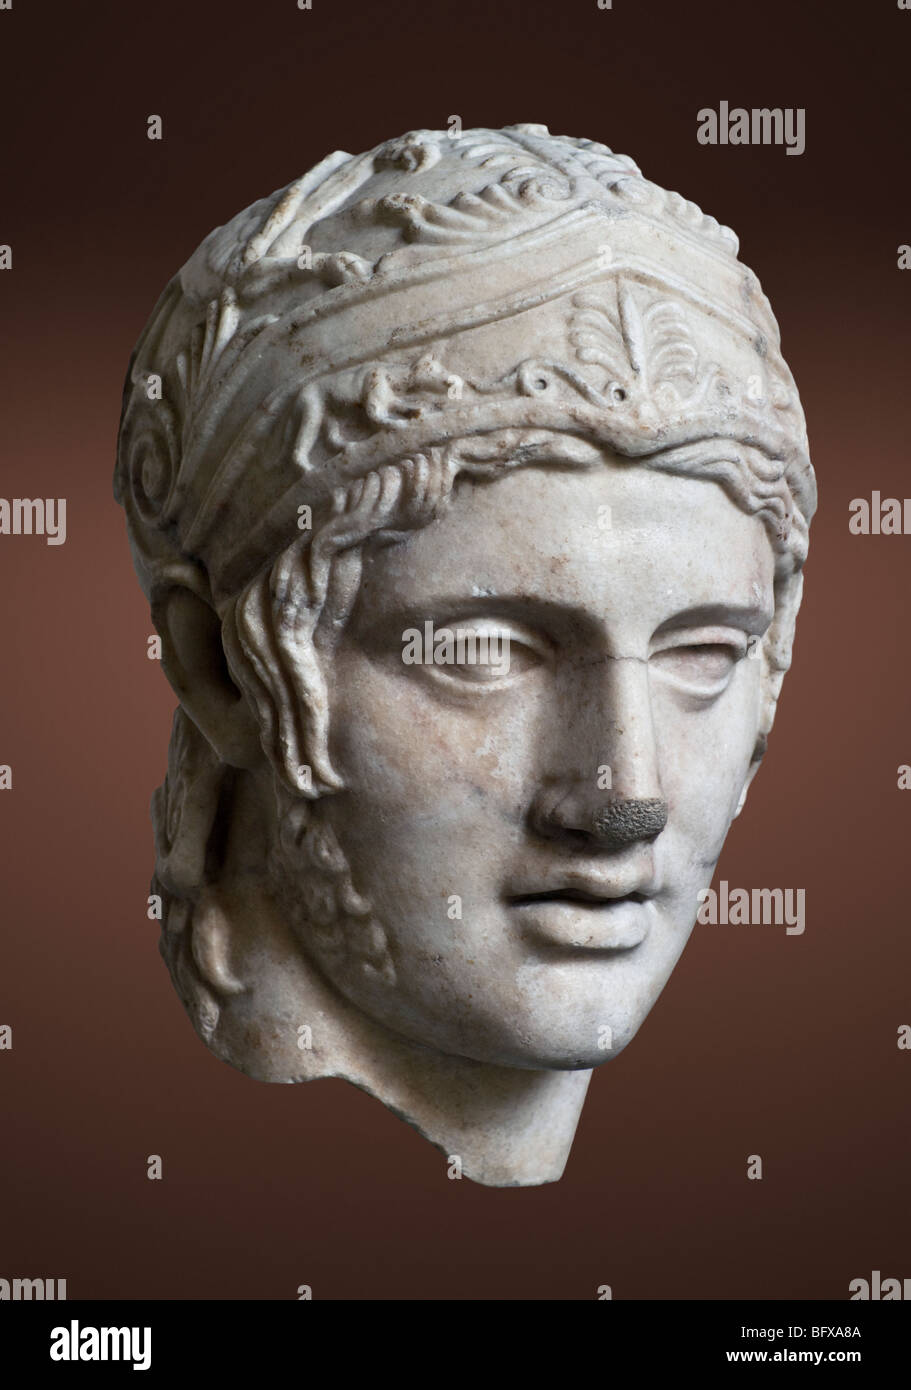 Head of Ares by Alkamenes, from the temple of Ares in Athens. See description for more information. - Stock Image